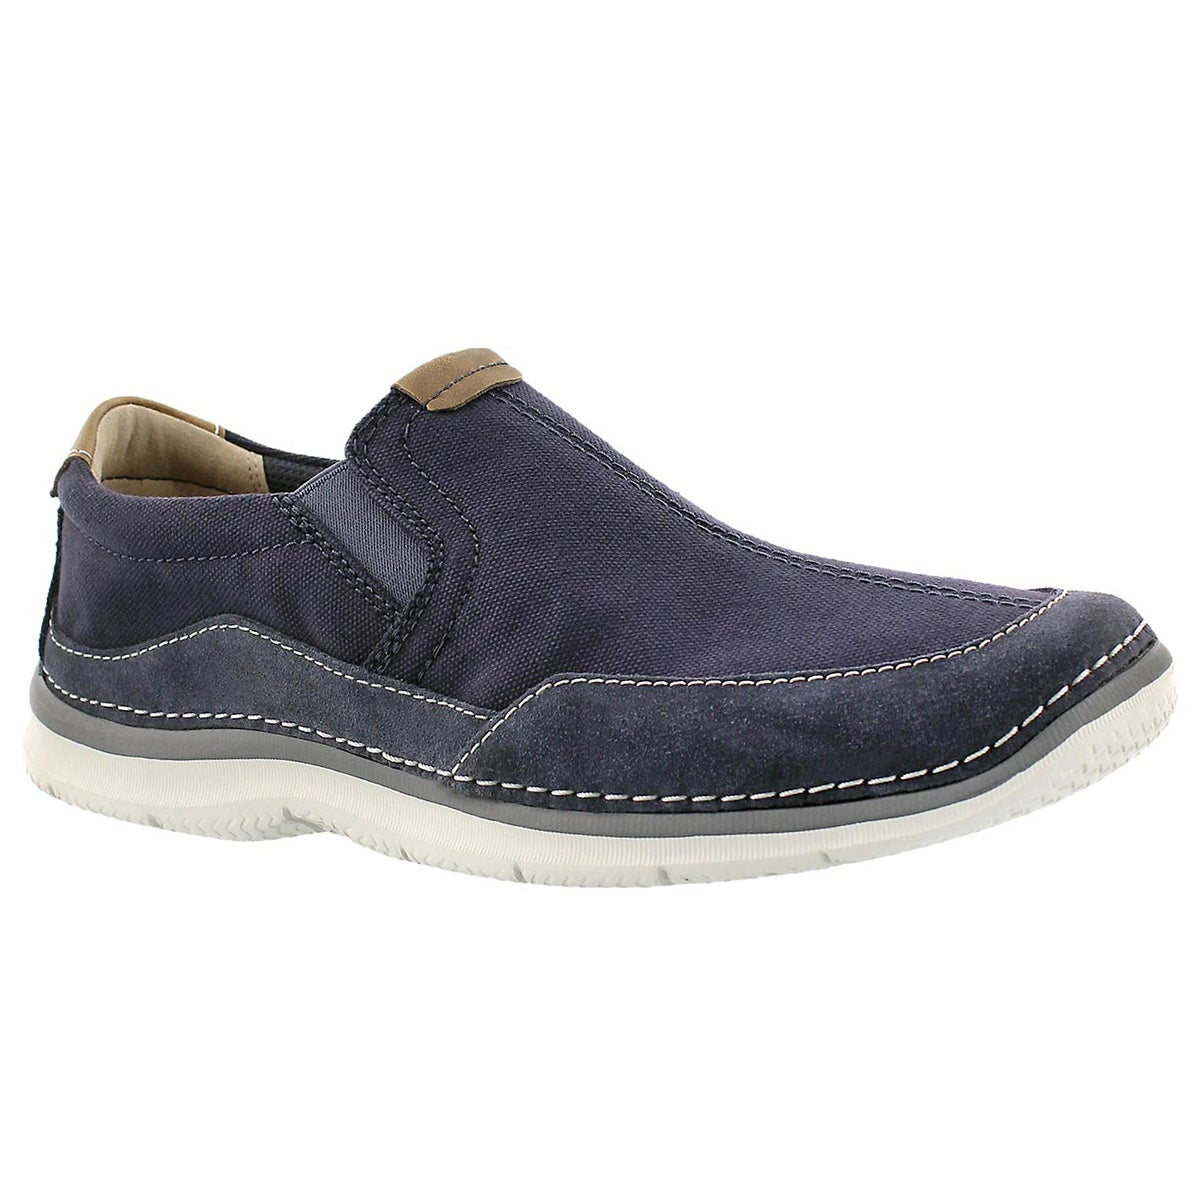 Men's RIPTON FREE blue slip on casual shoes